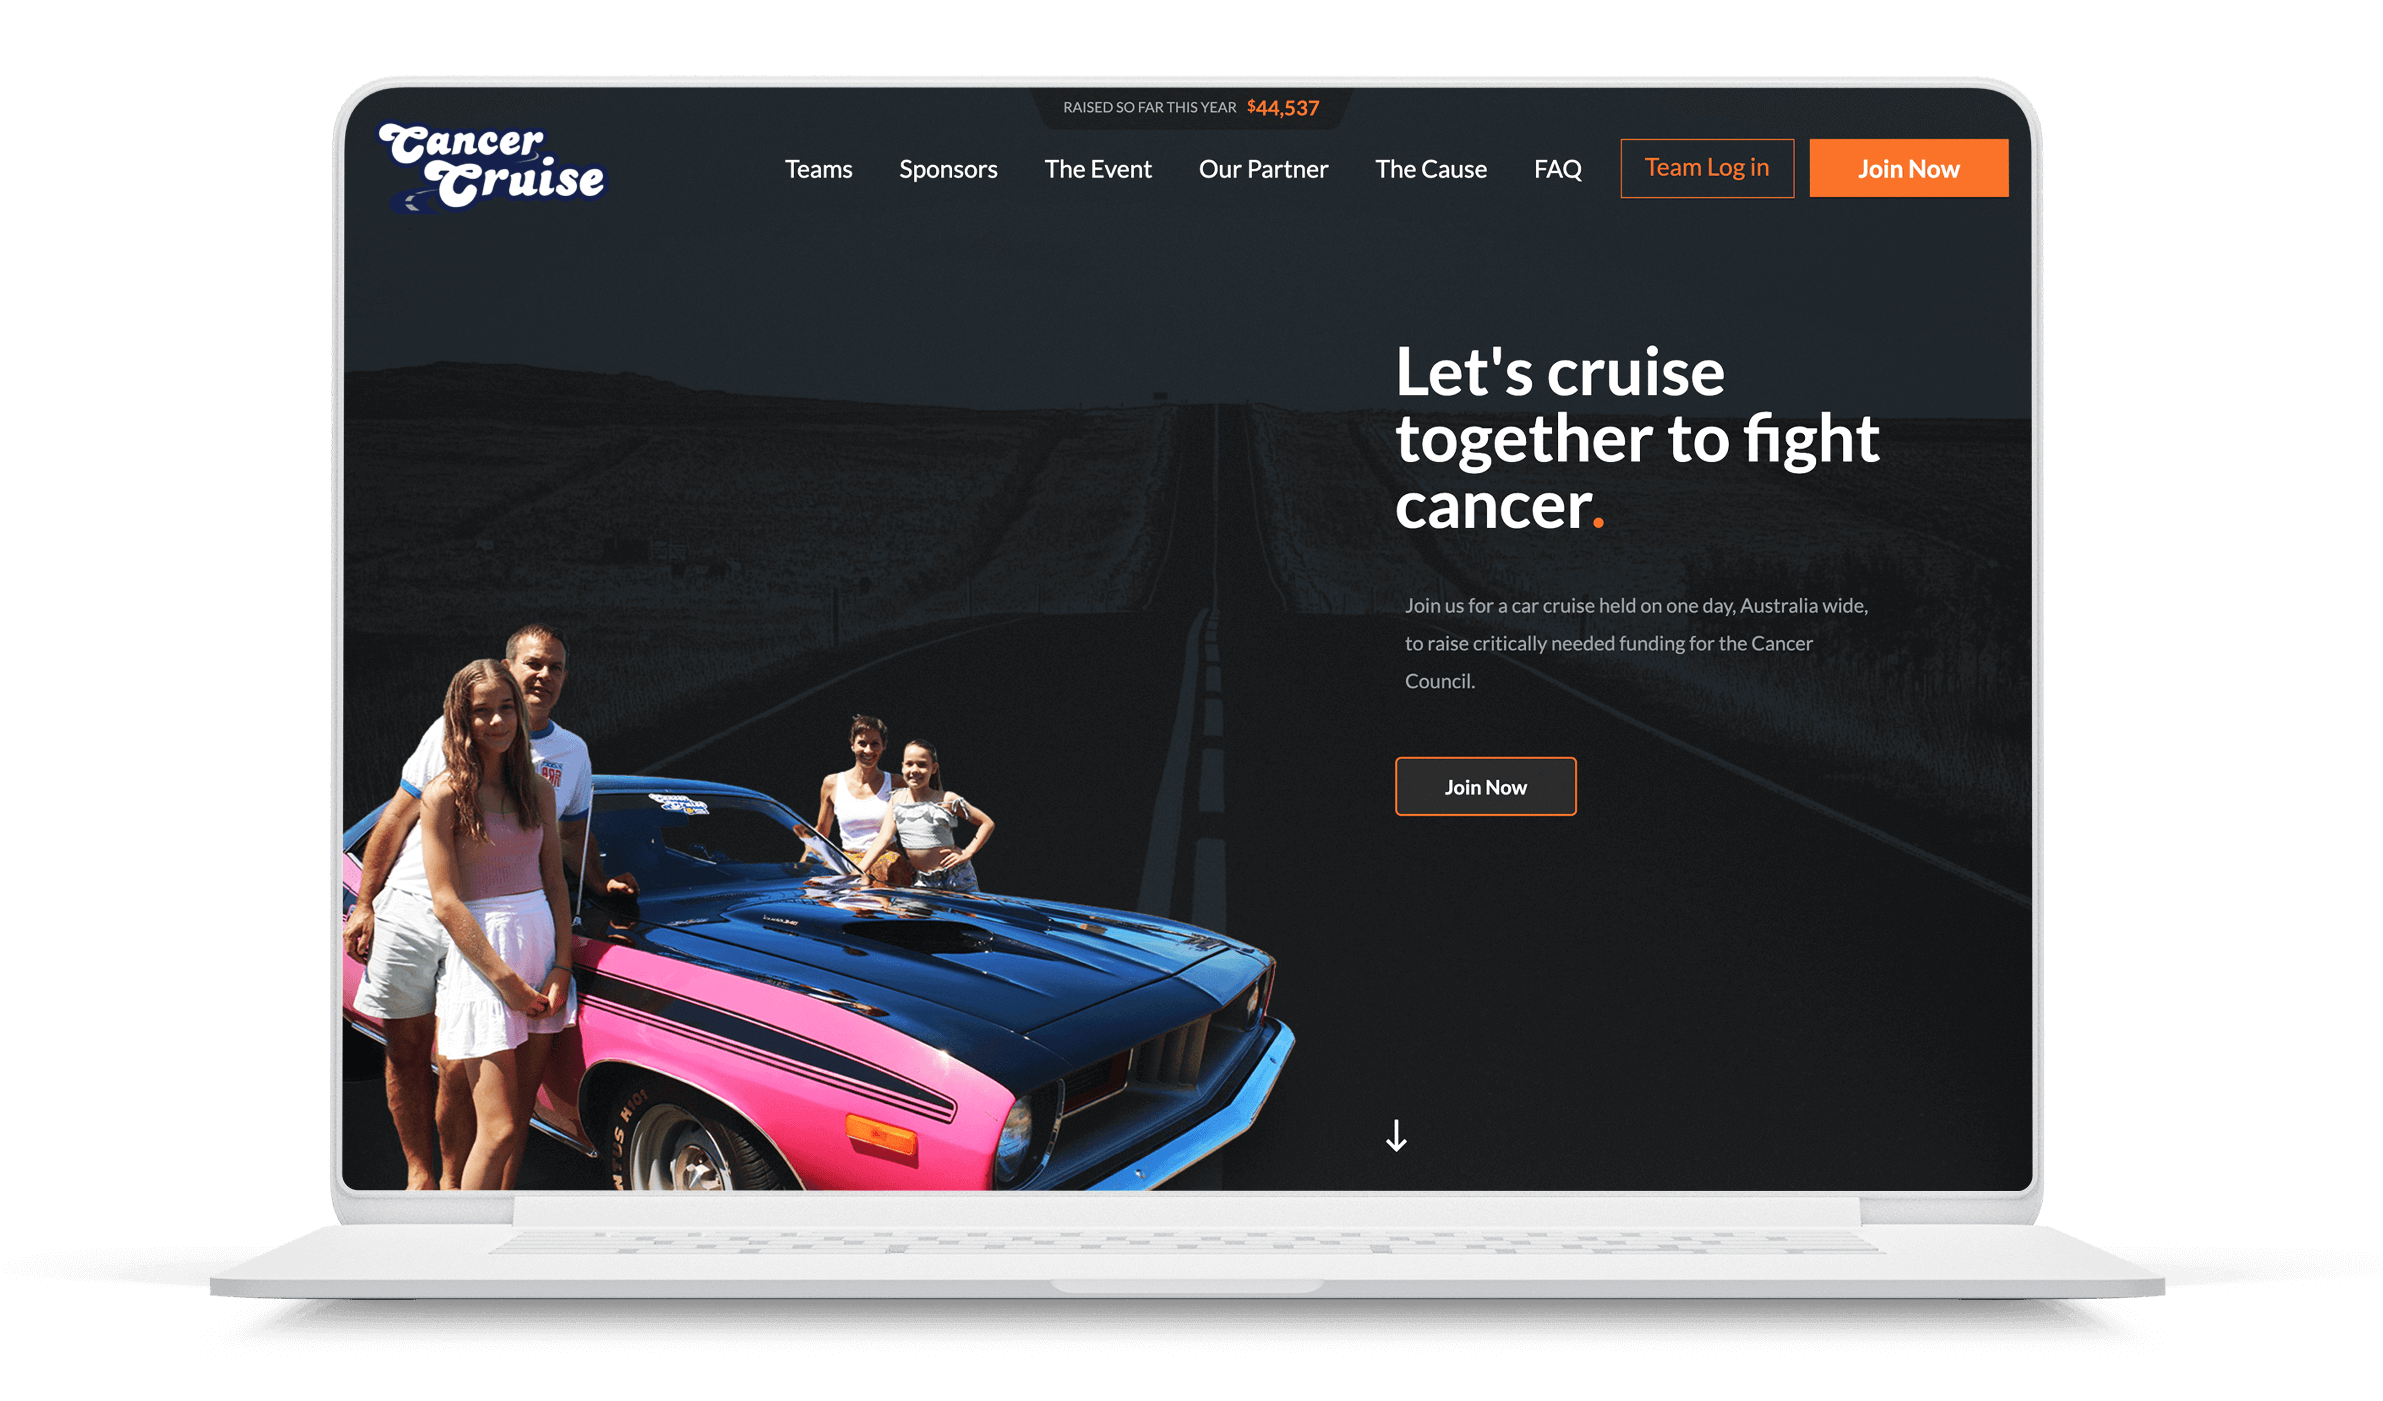 Web design for cancer fundraising site - Cancer Cruise